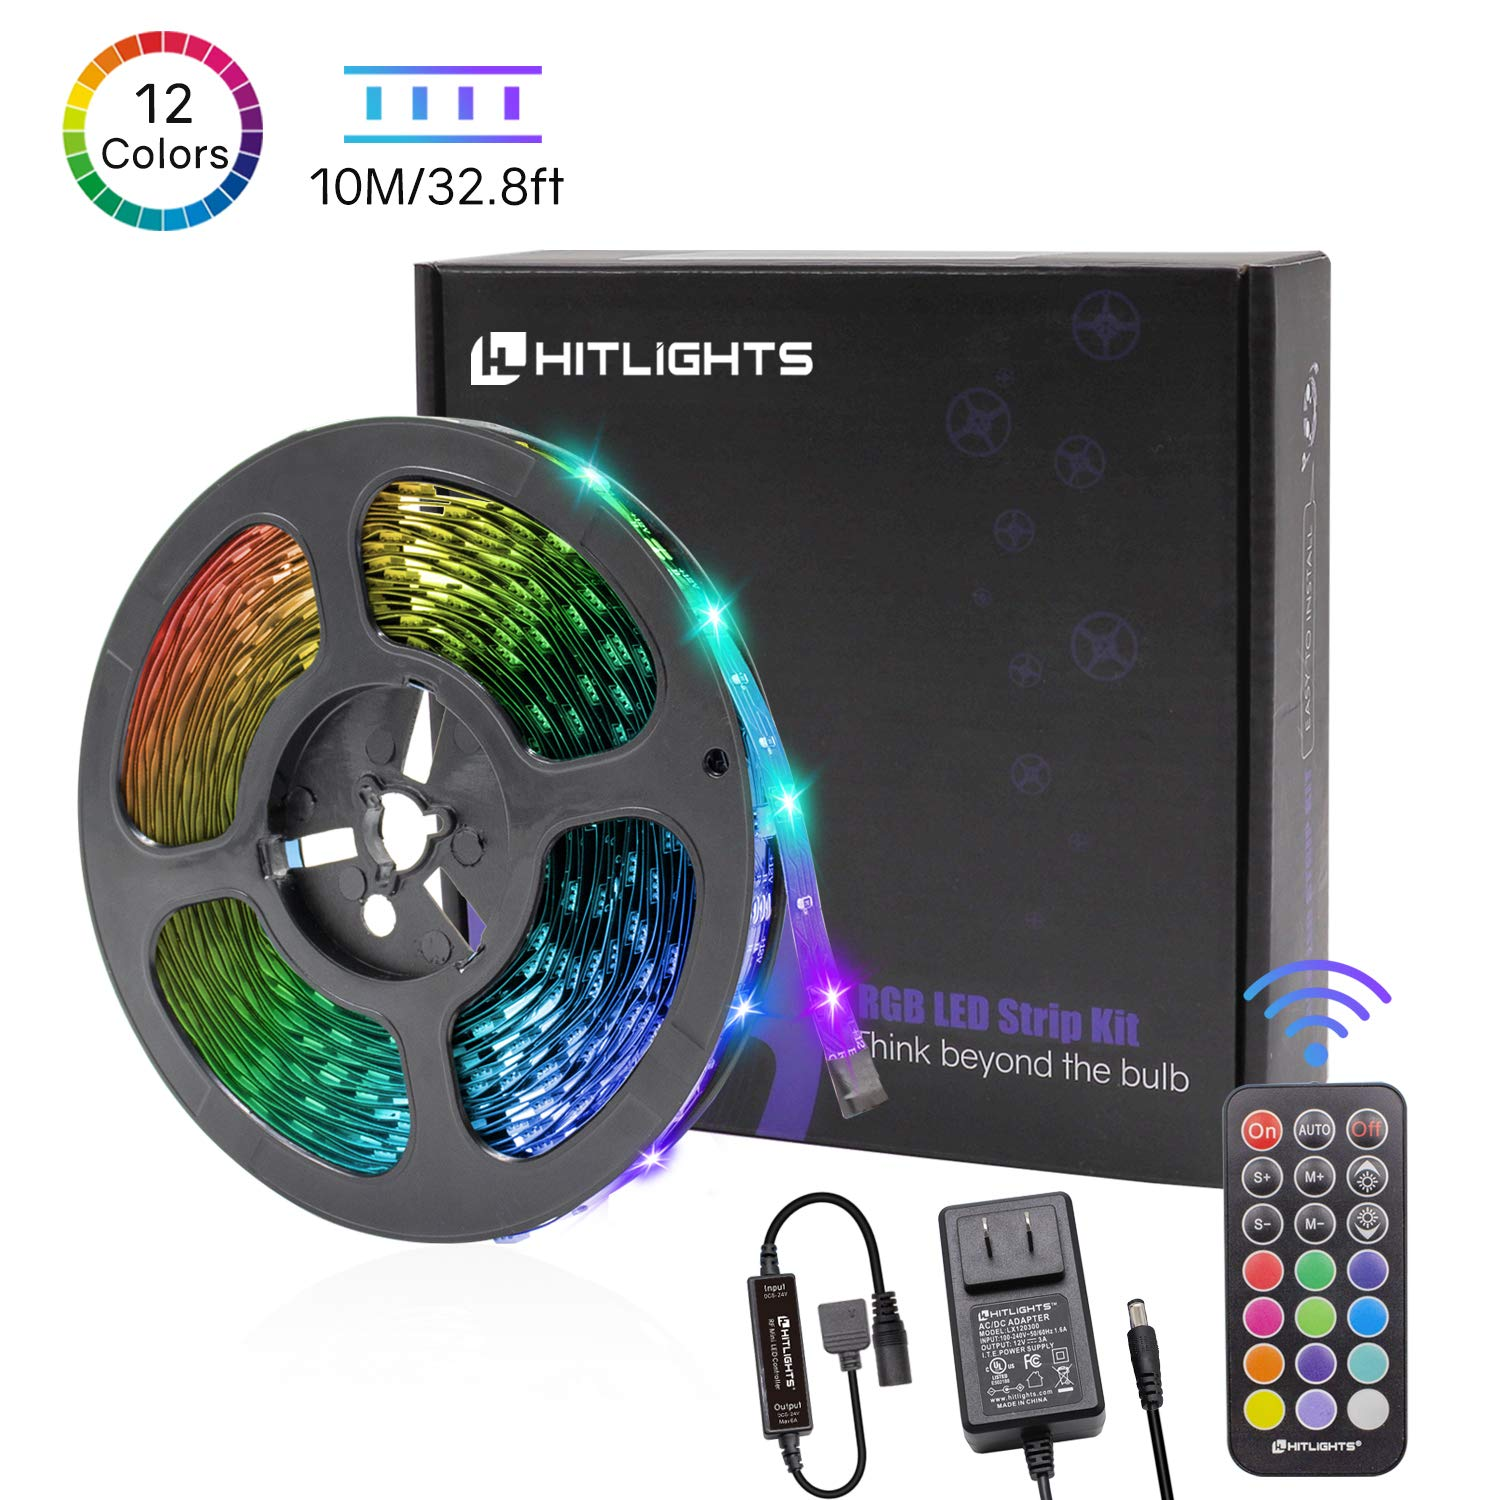 LED Strip Lights, HitLights Color Changing Strip Lights 32.8ft SMD 5050 Flexible RGB Light Strips with RF Remote, UL Power Supply for Under Cabinet Lighting Kitchen Bedroom Home Decoration by HitLights